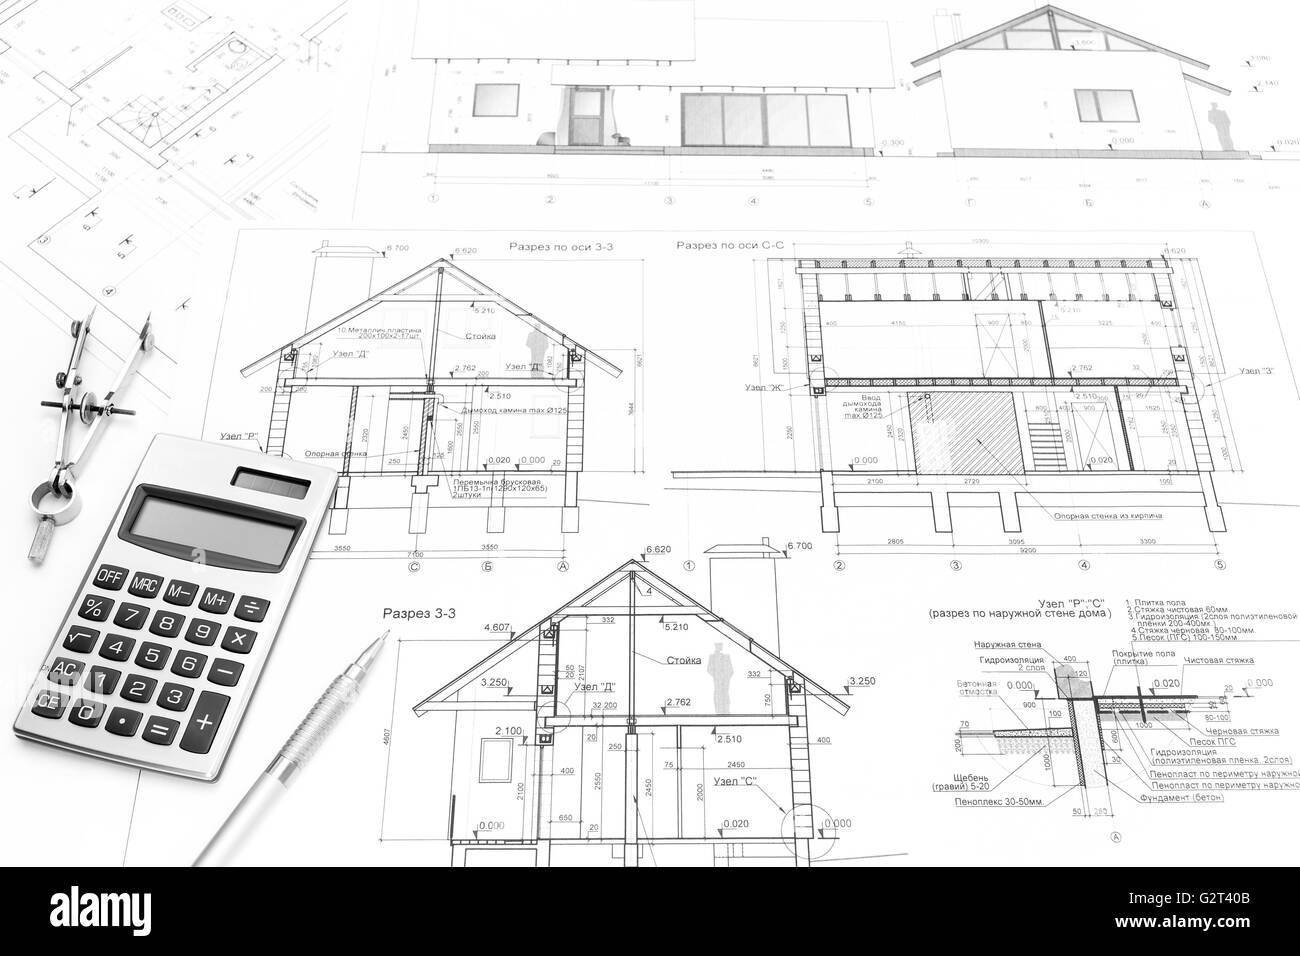 drawing compass calculator pencil and architectural drawings of modern house